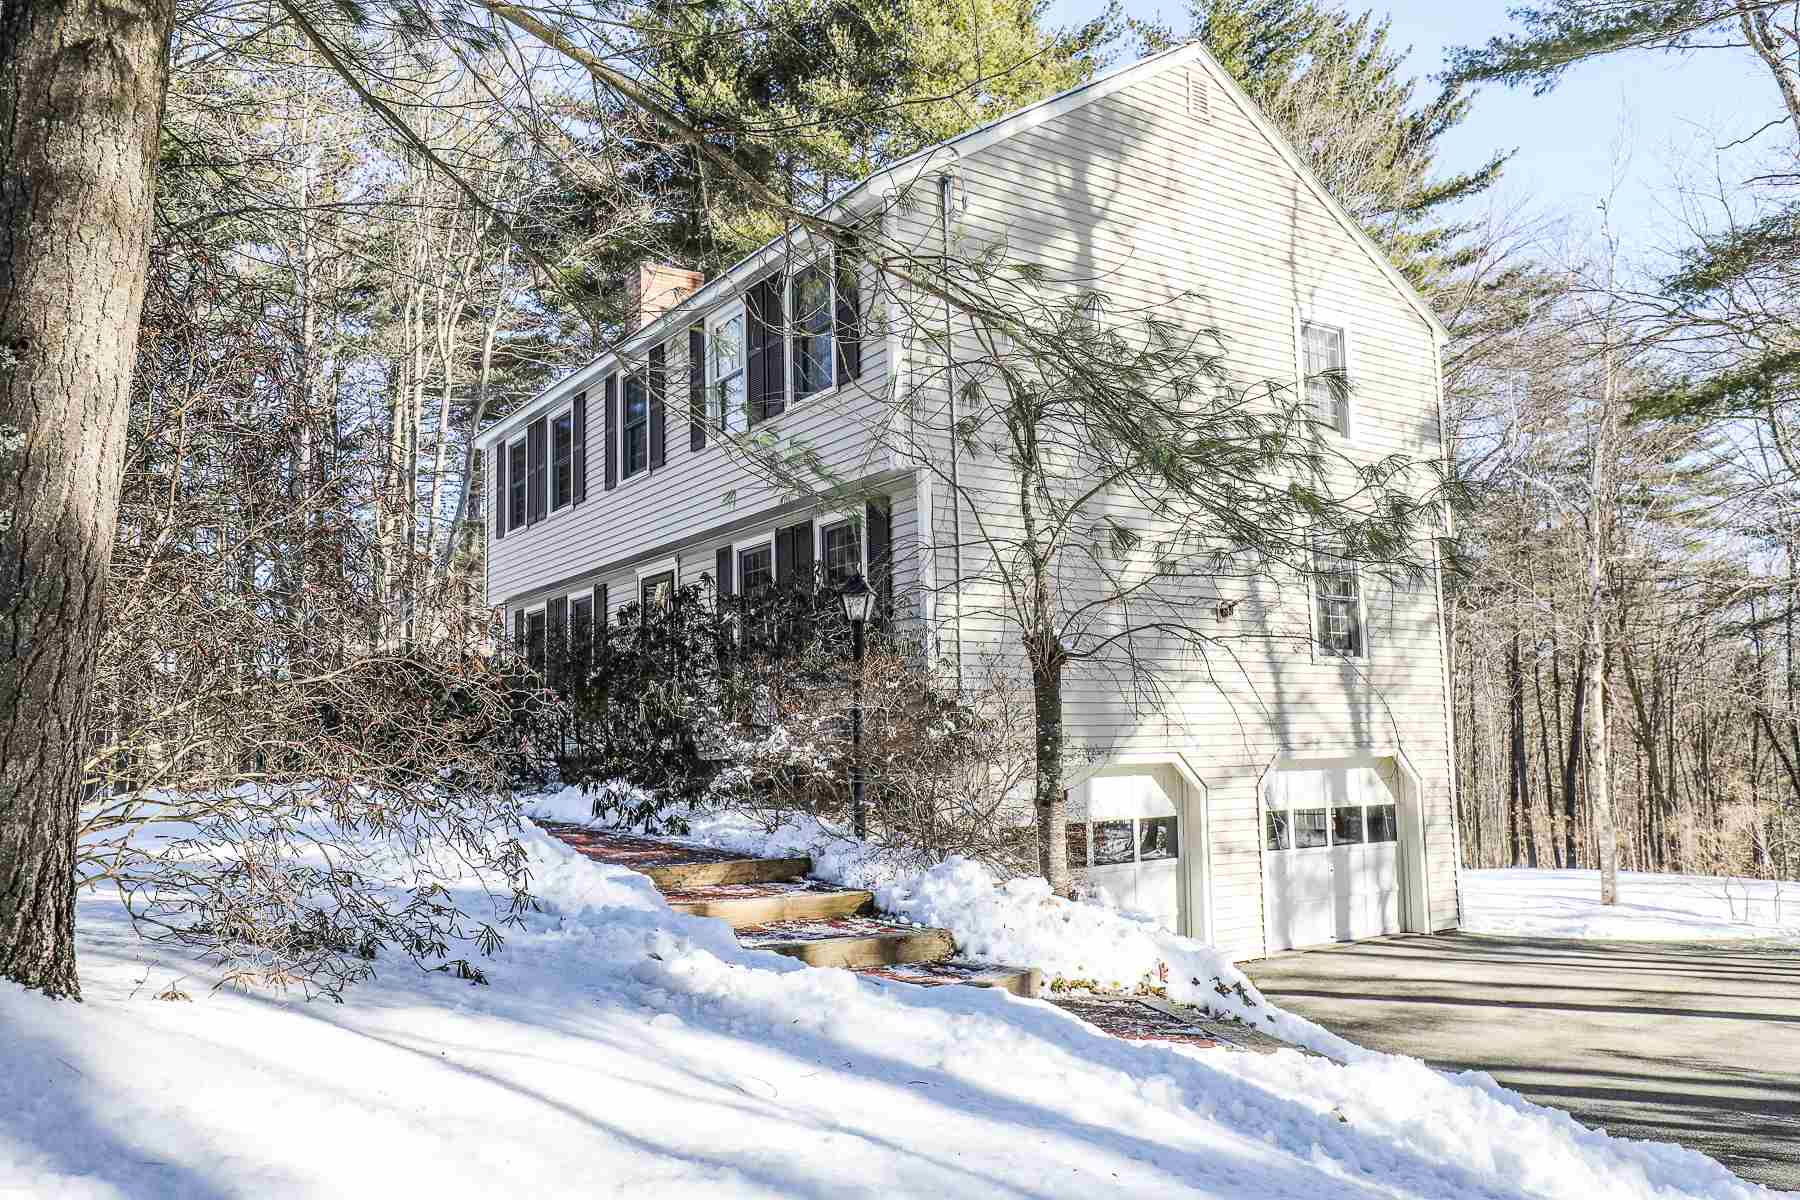 MLS 4794170: 40 Clark Road, Milford NH